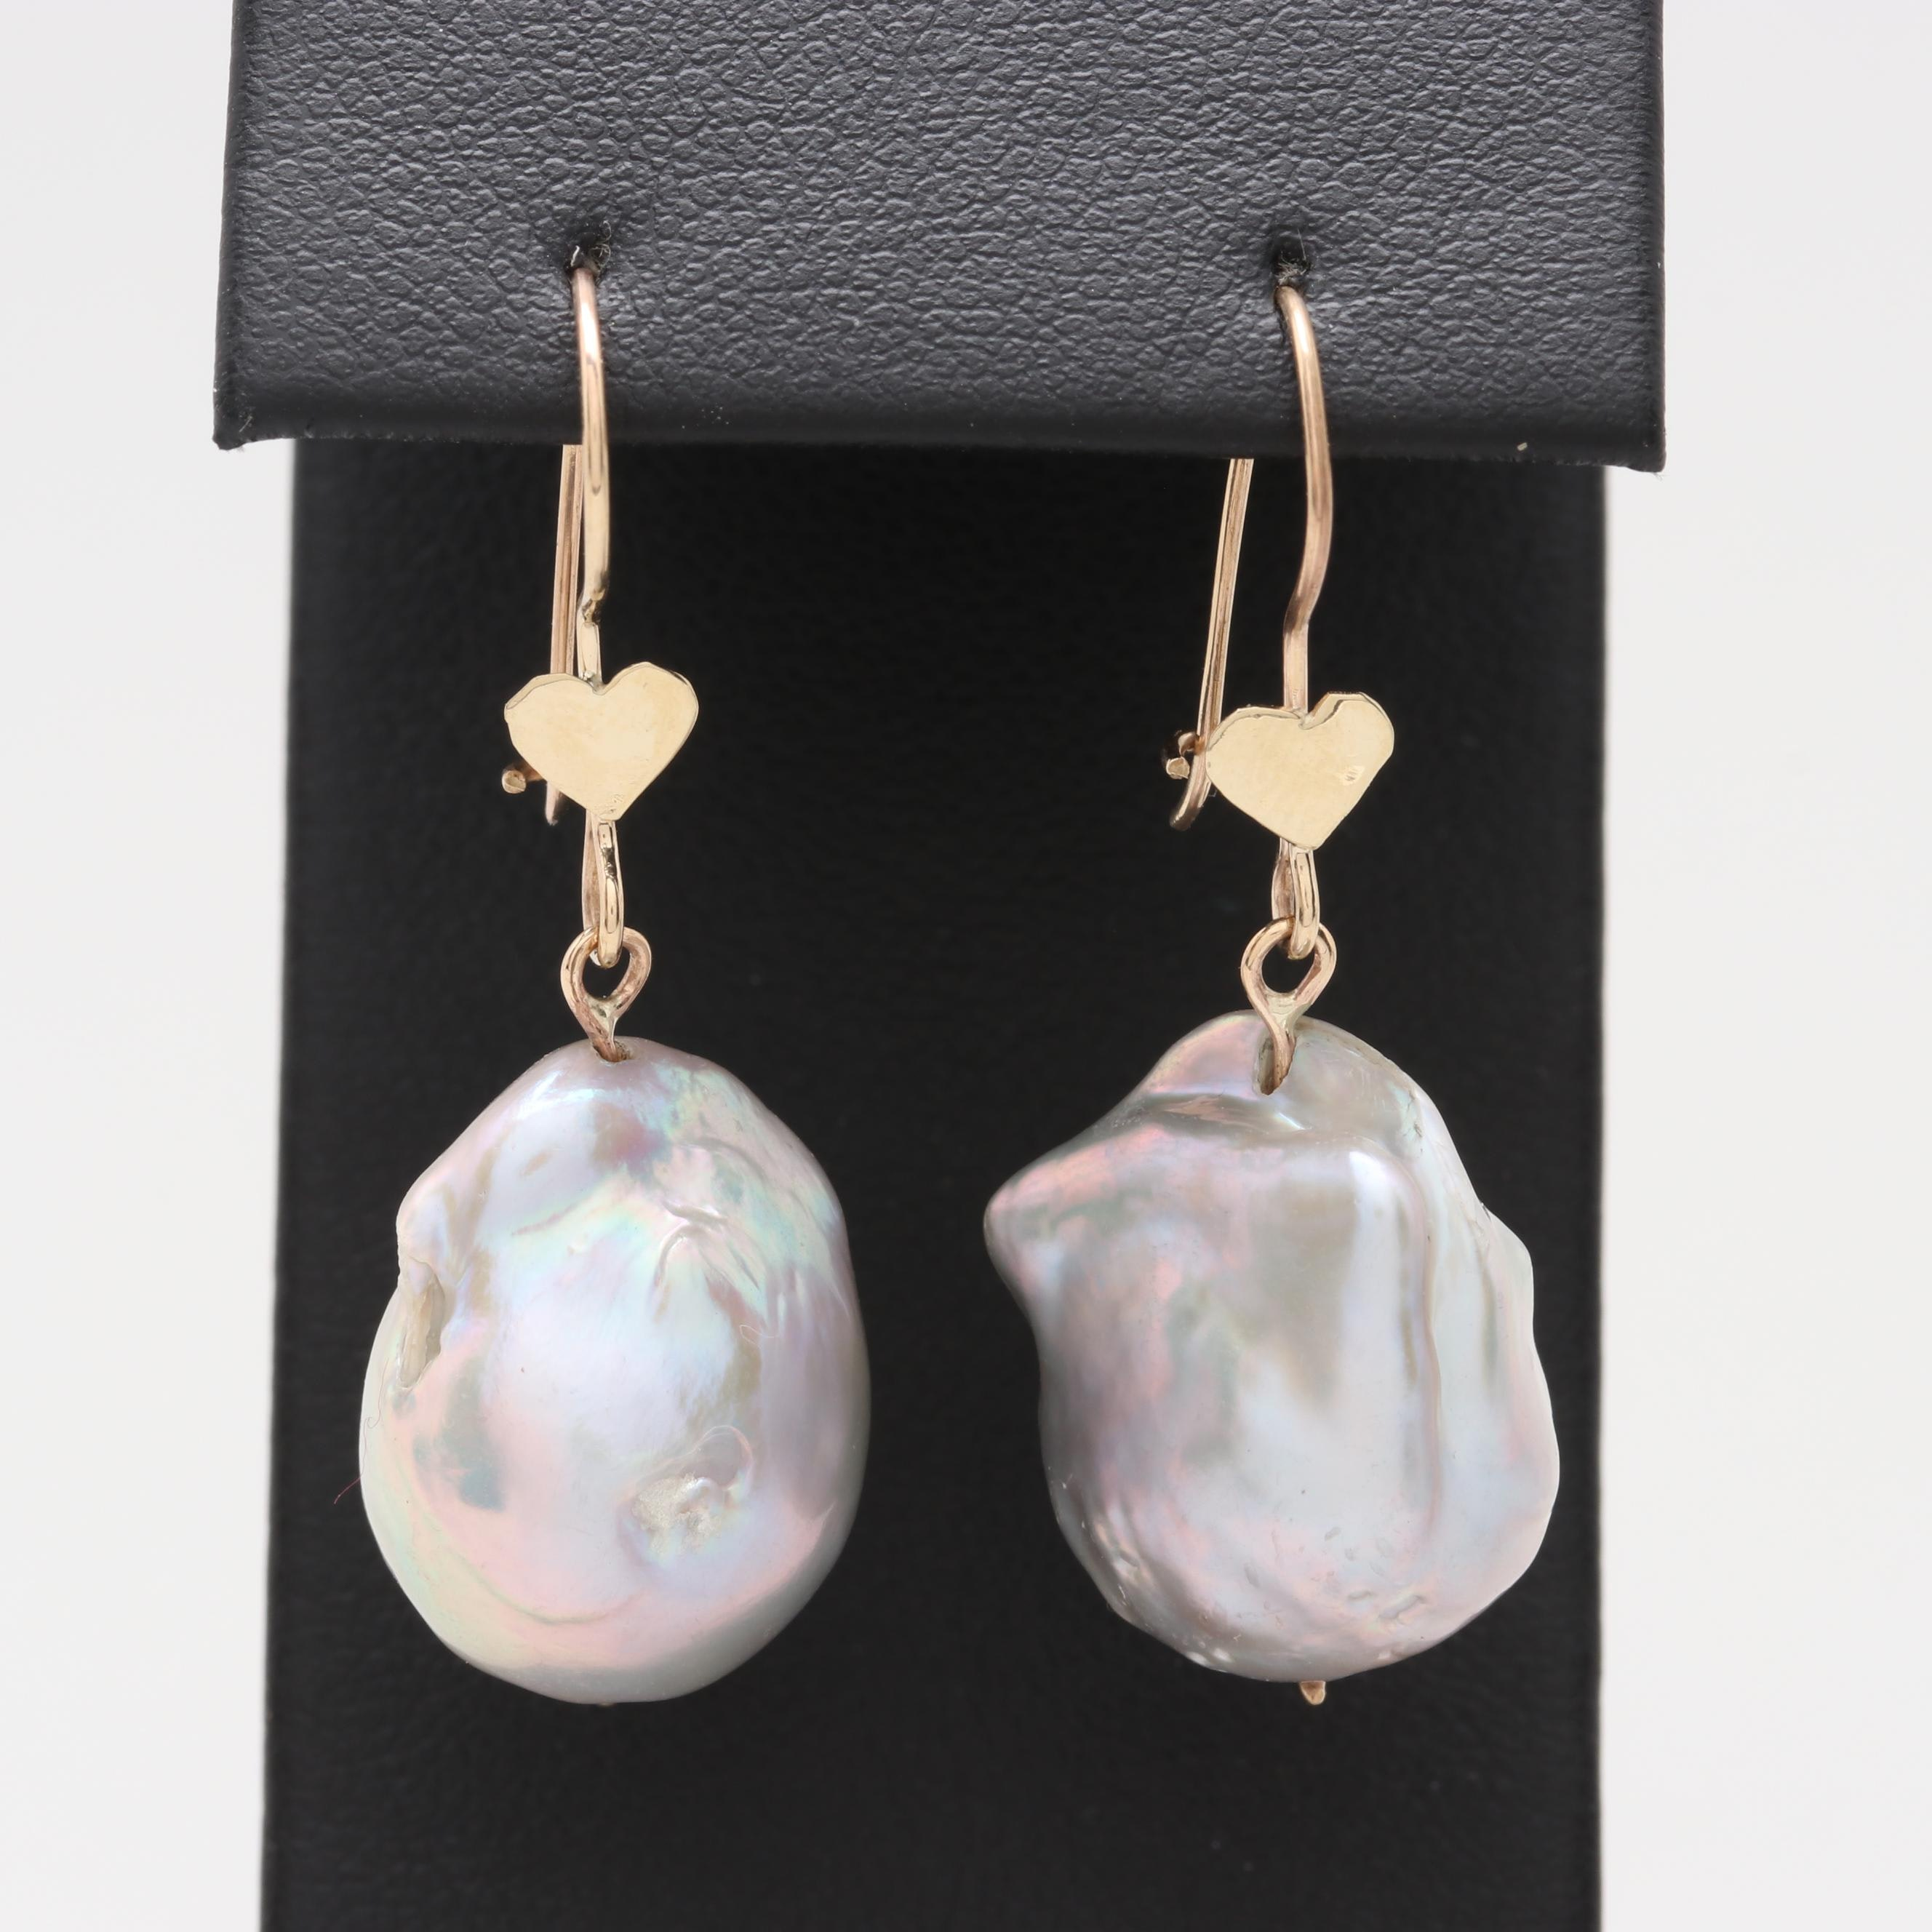 14K Yellow Gold Cultured Pearl Heart Motif Earrings